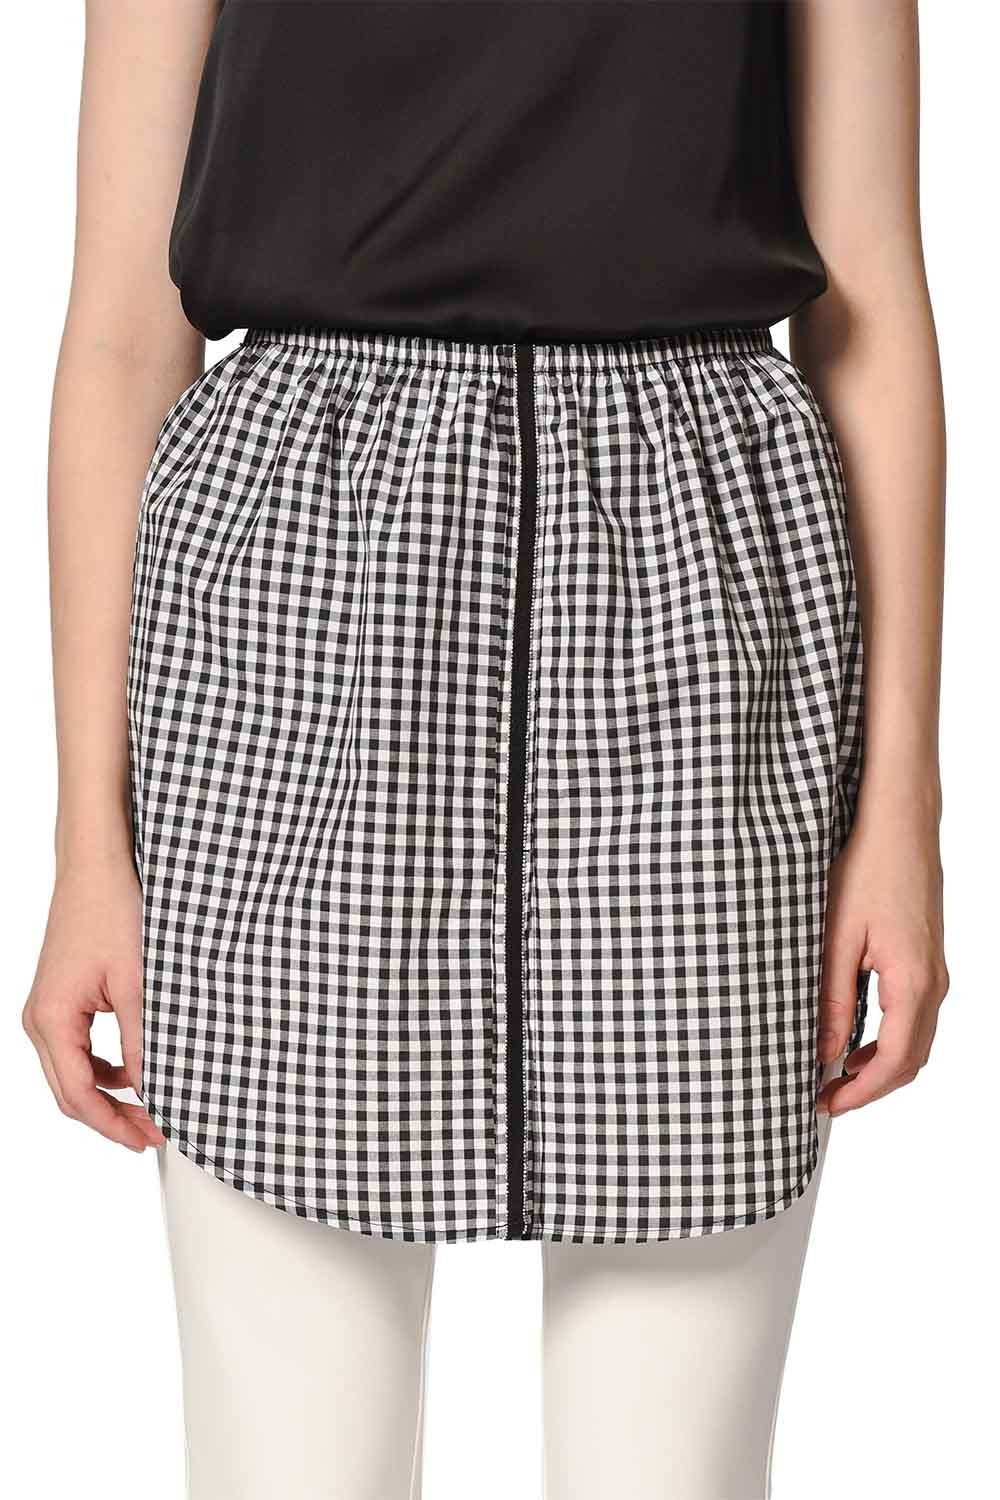 MIZALLE Complementary Skirt (Plaid) (1)